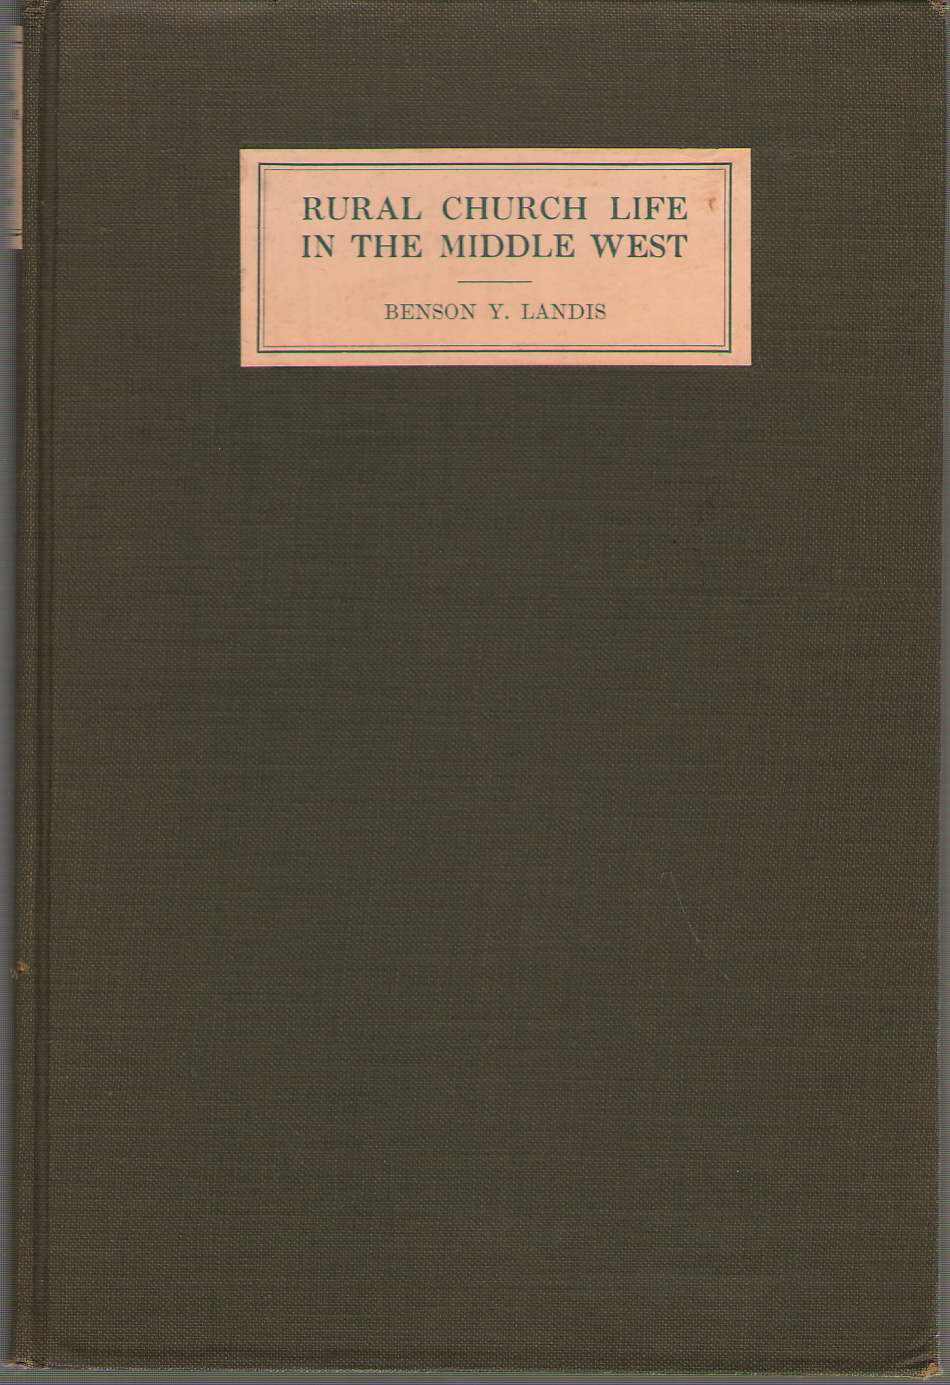 Rural Church Life In The Middle West As Illustrated by Clay County, Iowa, and Jennings County, Indiana, with Comparative Data from Studies of ... Counties, Landis, Benson Y.